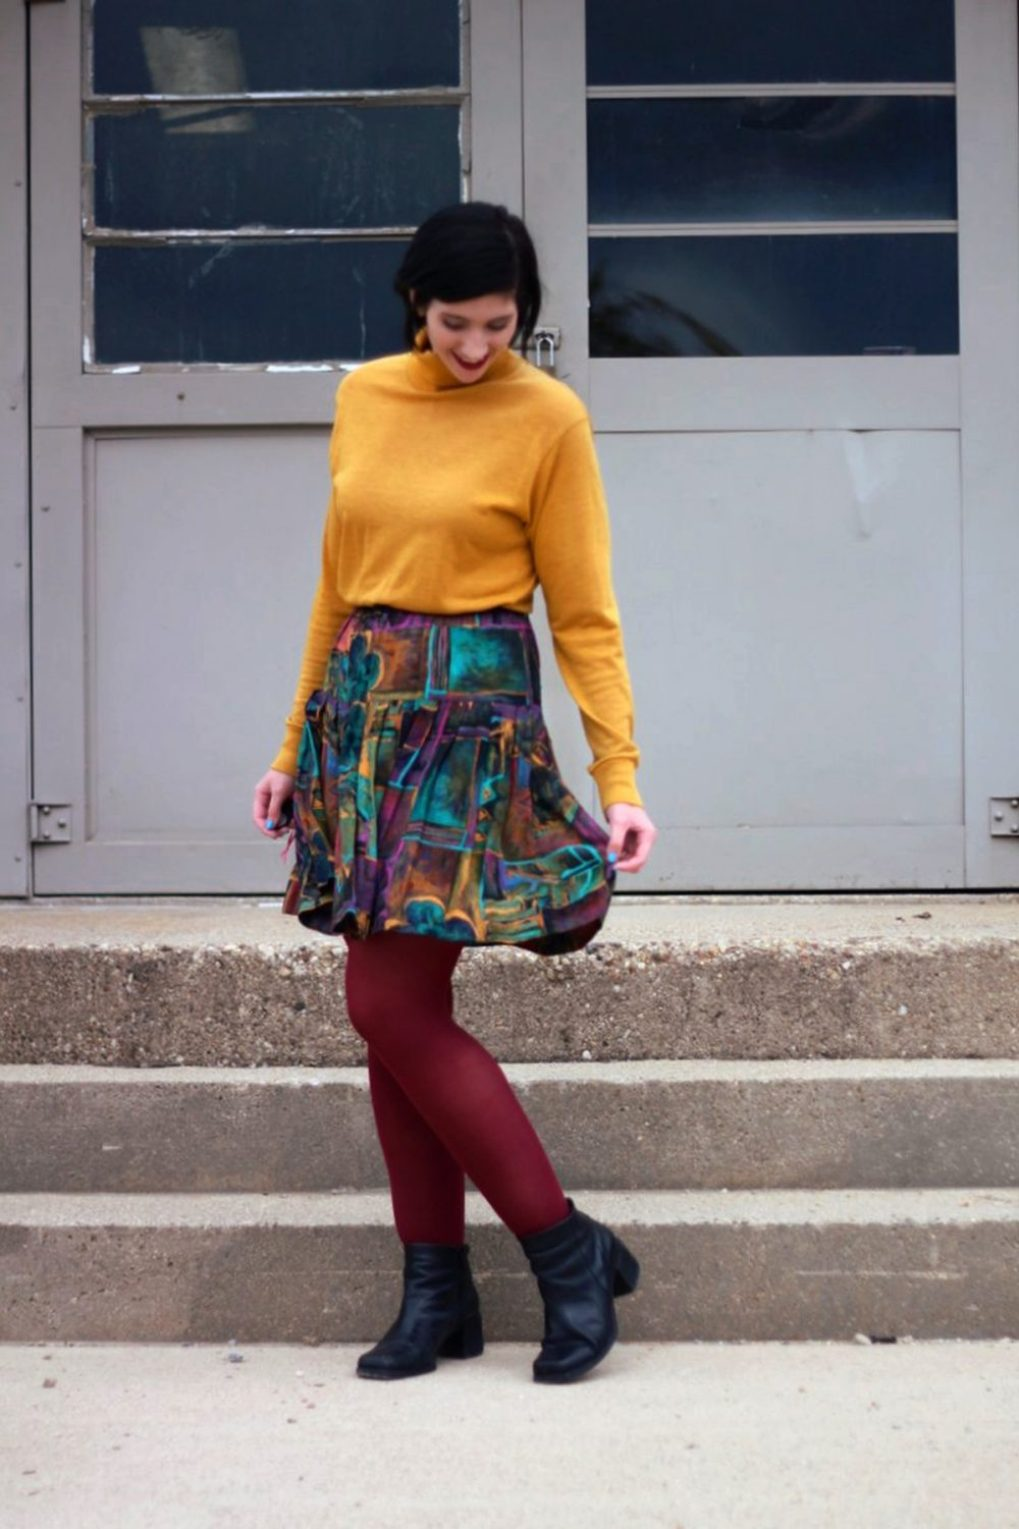 Outfit: mustard yellow turtleneck, multi colored skirt, maroon tights, black booties